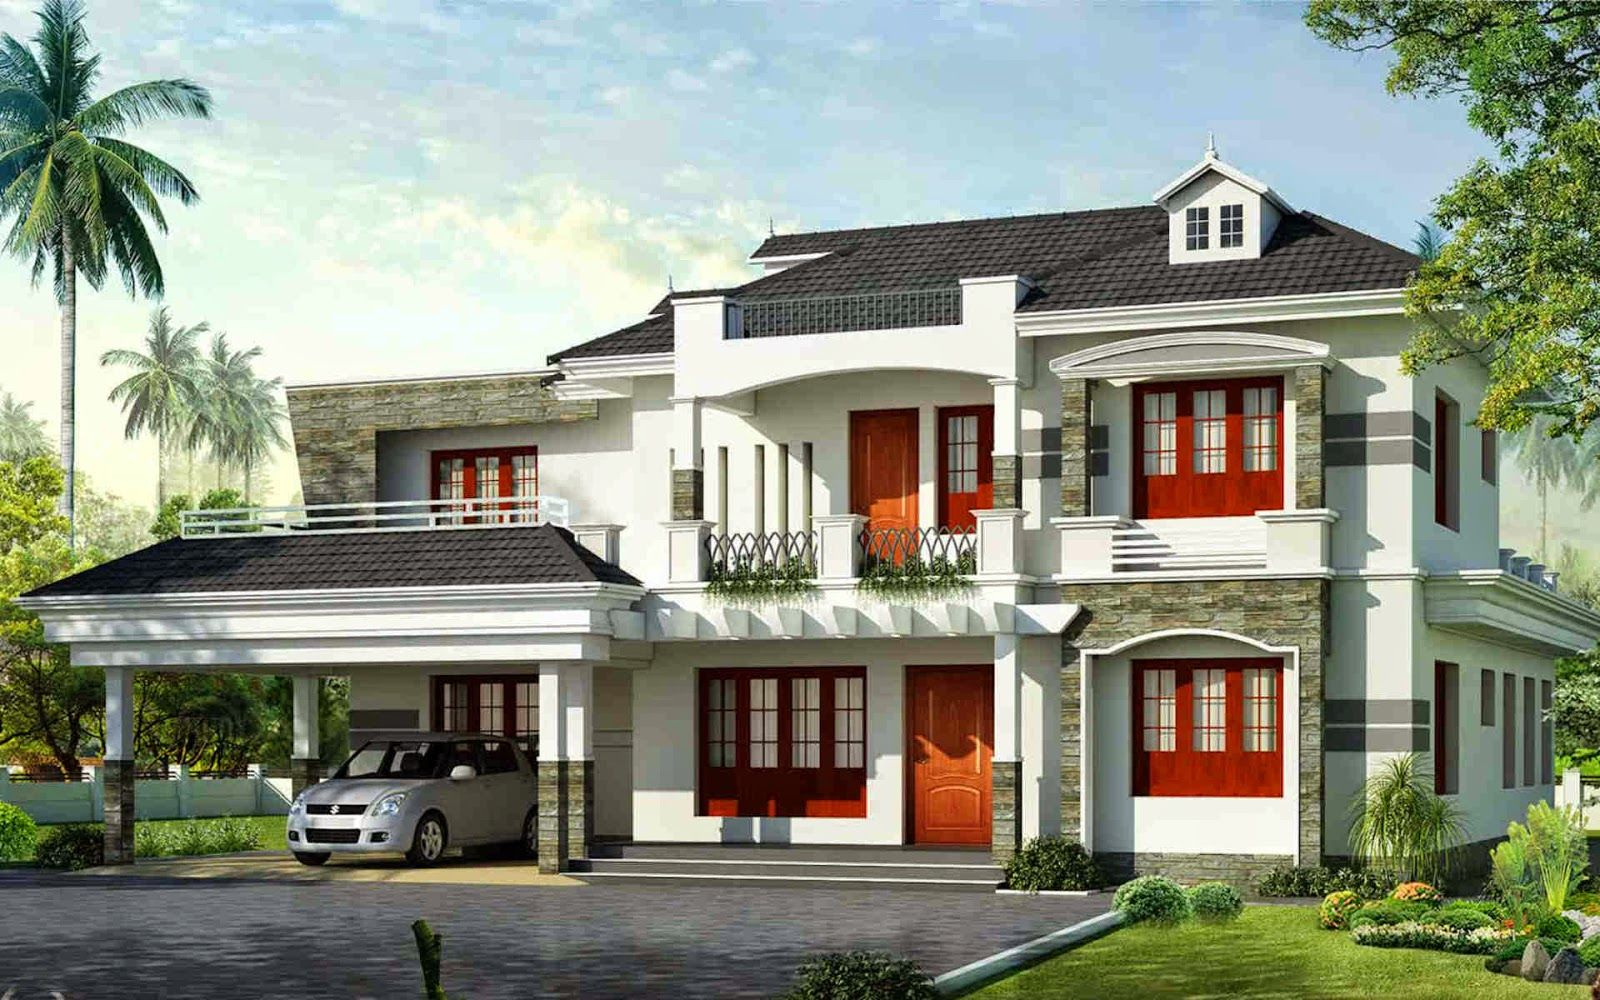 Exterior-Design-Kerala-Home-Design-wallpaper-pictures-hd